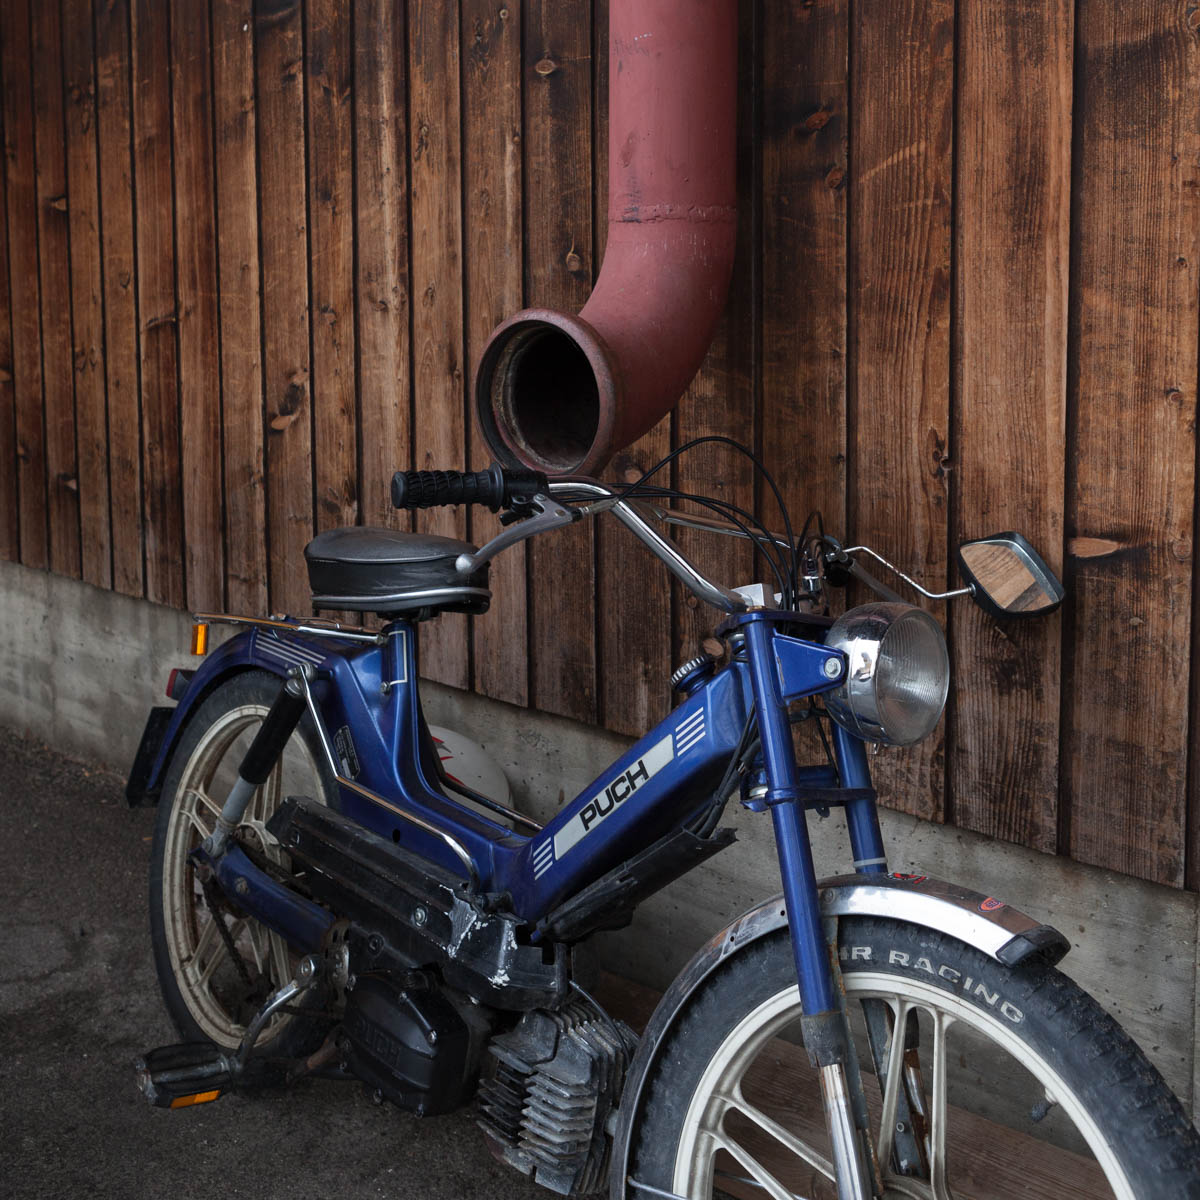 "Puch Motorized Bike - A Puch, a motorized bicycle parked against a wodden wall. A gullter remids of an alphorn. Plaffeien, June, 2012. - Copyright © © S. Borcard - N. Metraux - Planfayon / Plaffeien - Fribourg - Switzerland - <A href=""https://maps.google.com/?ll=46.741653,7.287395&z=16"" target=""_blank"">(Map Puch Motorized Bike)</A>"